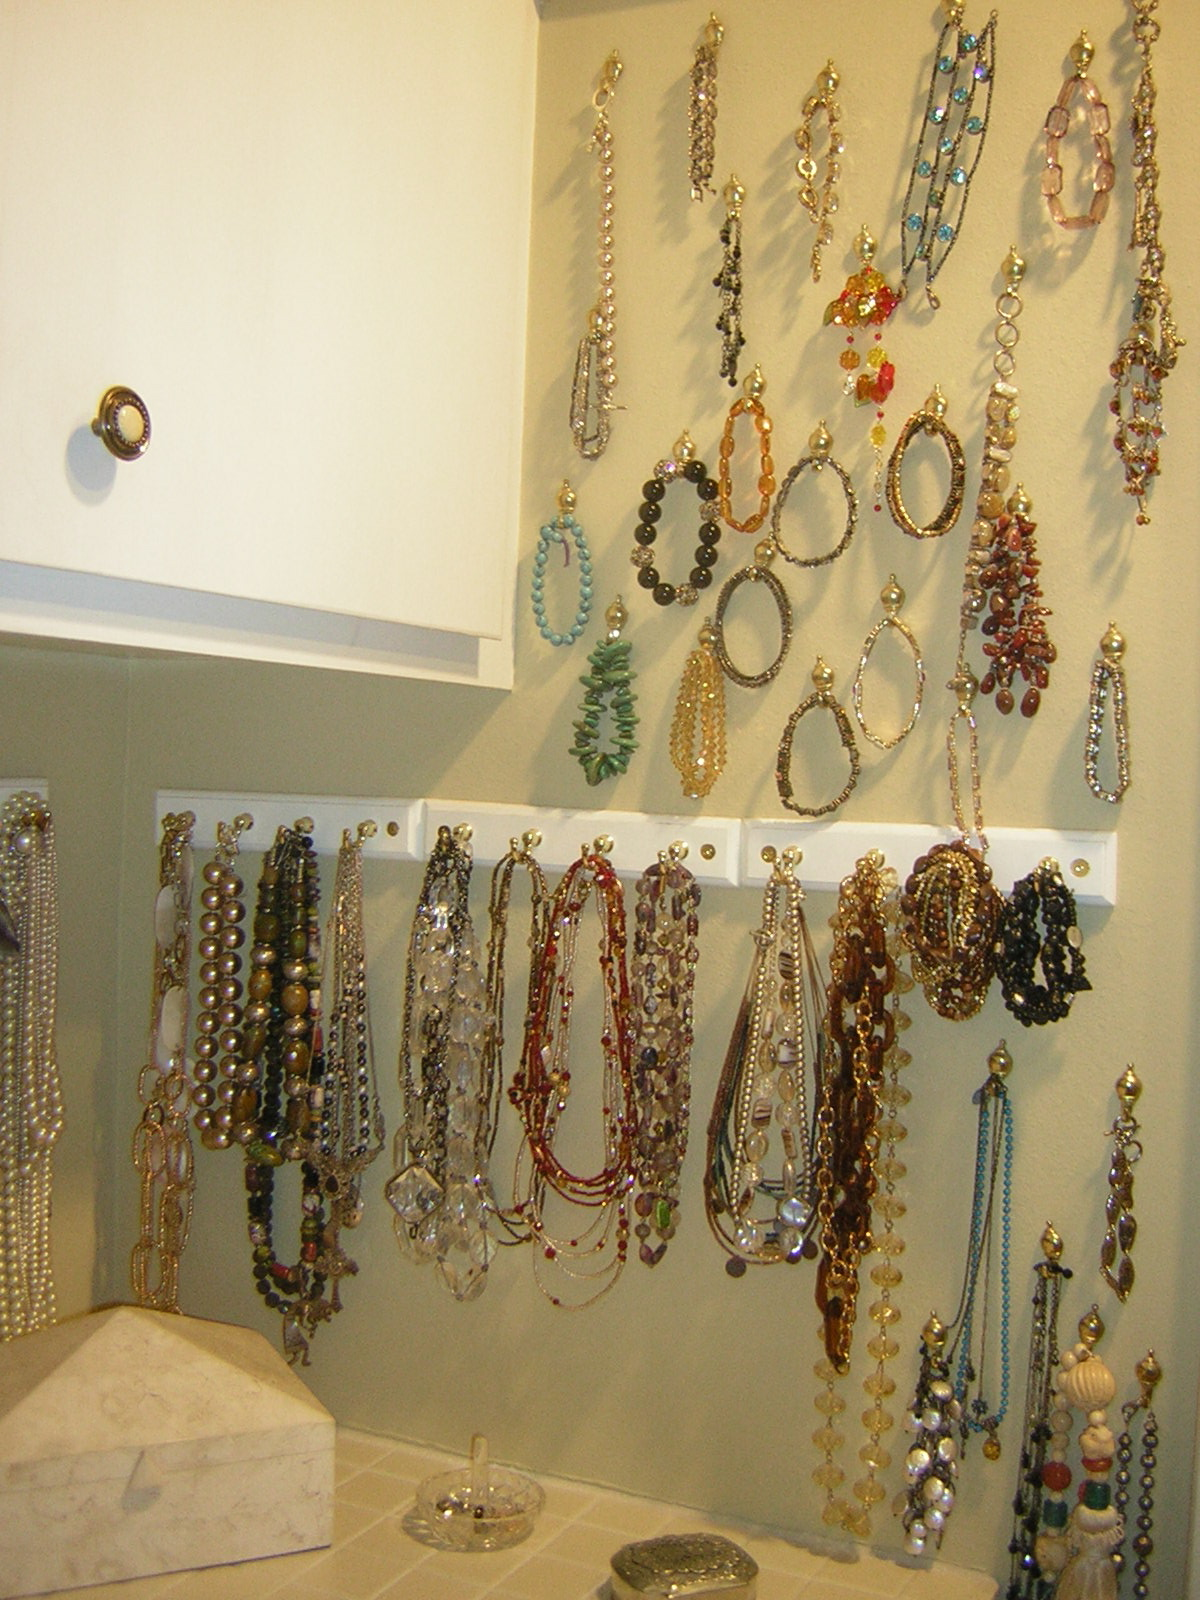 Jewelry san diego professional organizer image - Ideas for storing jewellery ...